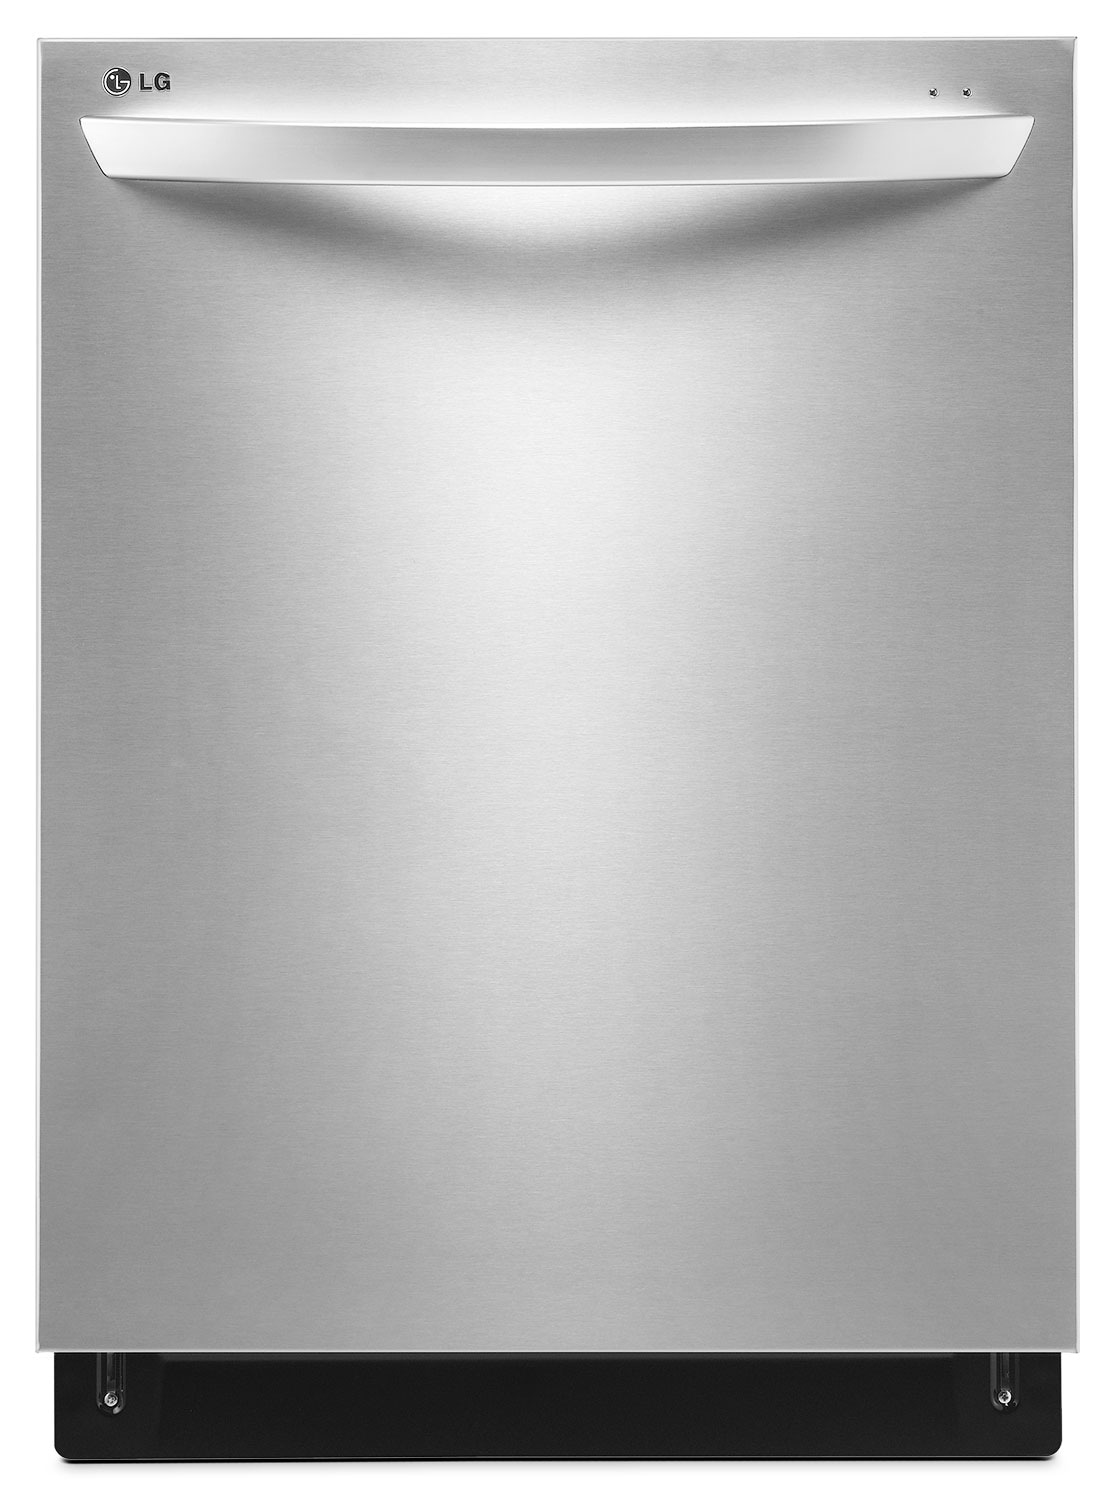 LG Built-In Dishwasher – Stainless Steel